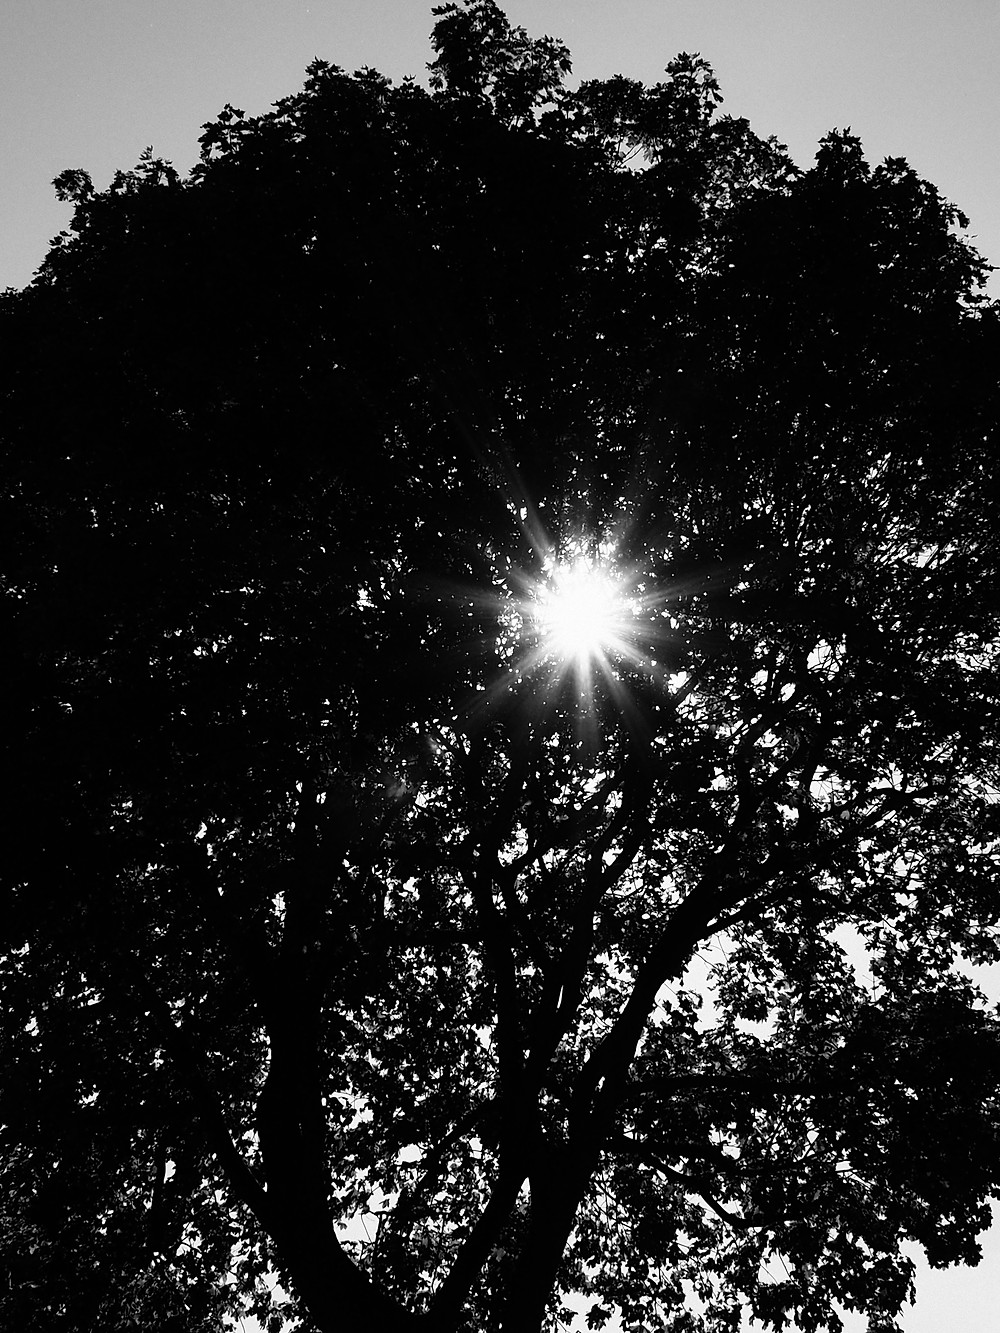 Eye of the Tree -  This was one of those moments when you're in the right place at the right time. I stopped down to f11 to get the starburst effect of the sun shining through the tree.